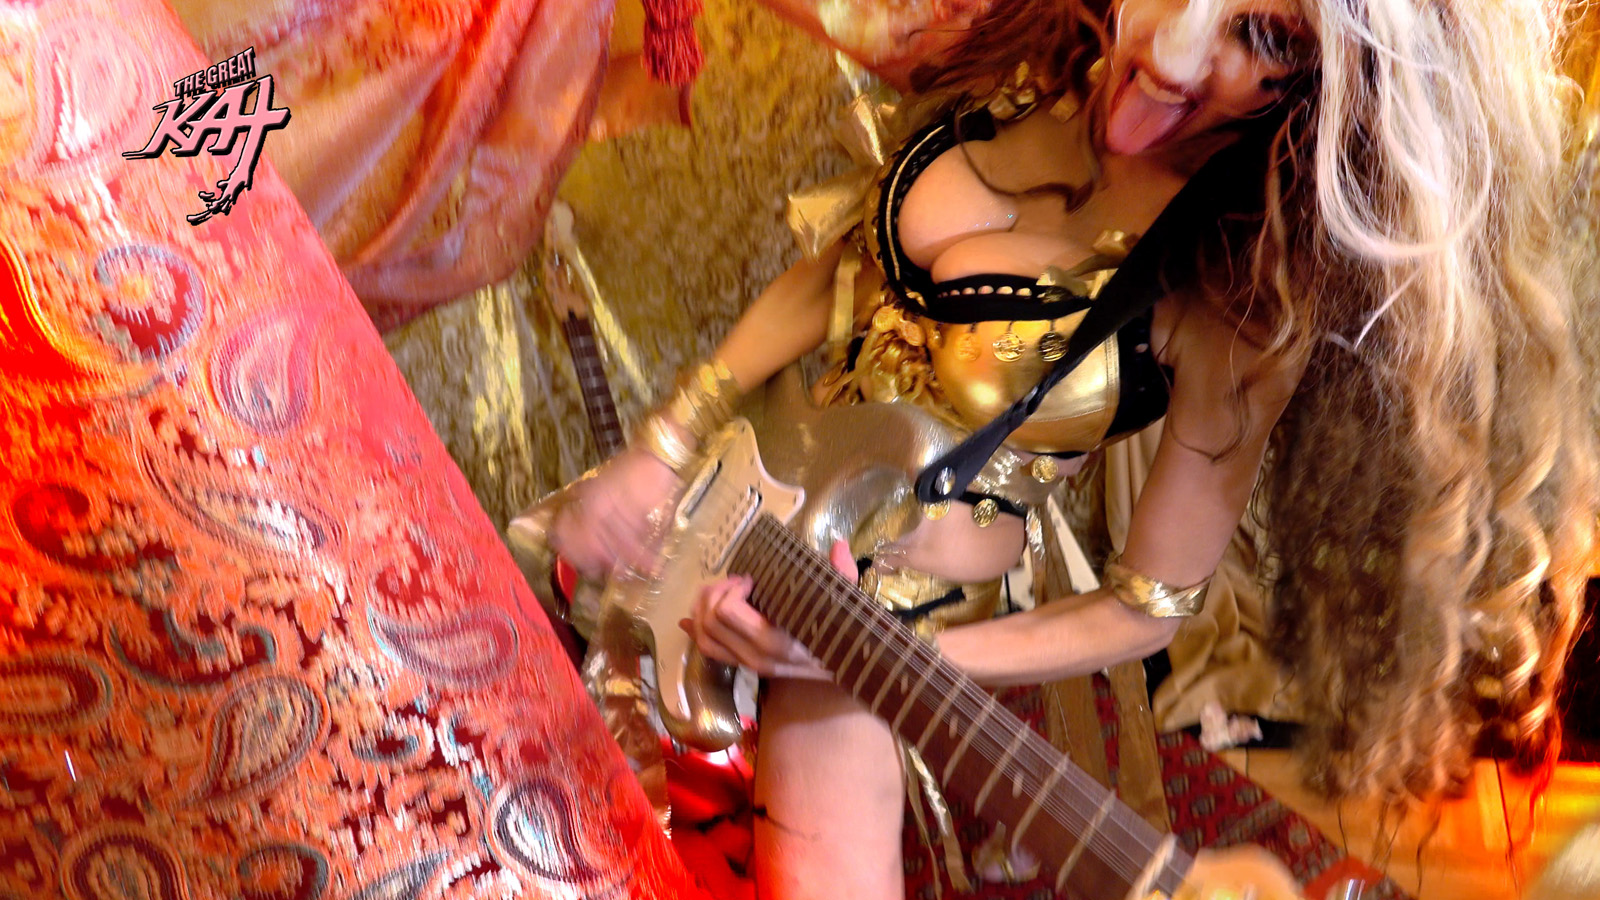 """GYPSY SHRED QUEEN! From The Great Kat's LISZT'S """"HUNGARIAN RHAPSODY #2"""" MUSIC VIDEO!"""